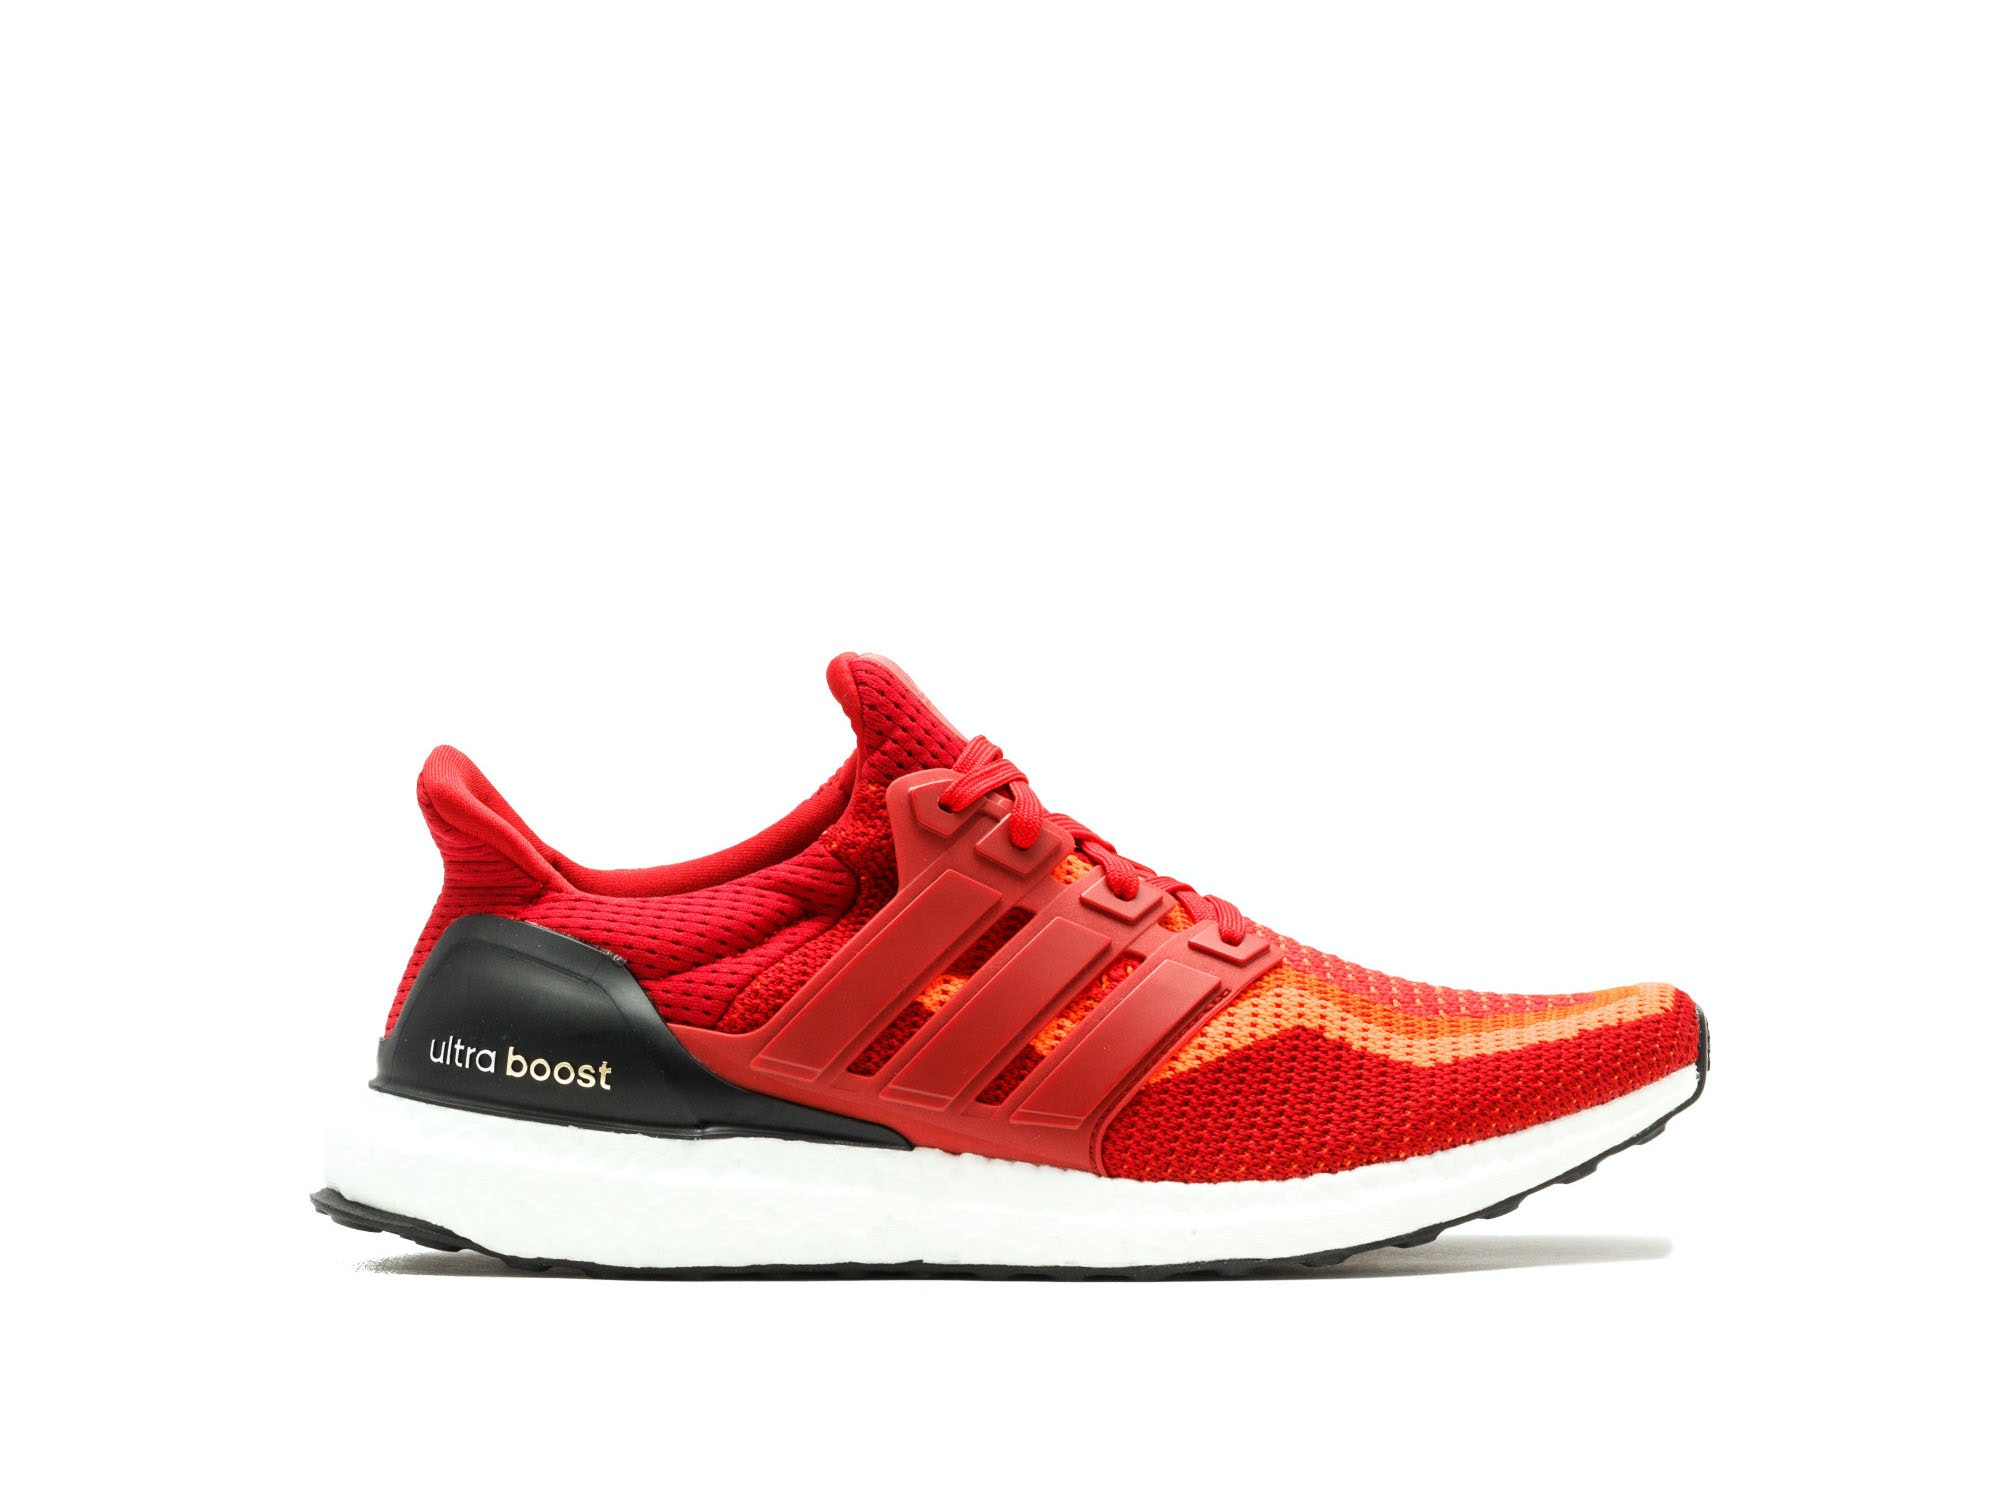 reputable site 42e55 bf8a3 Red Gradient UltraBoost 2.0